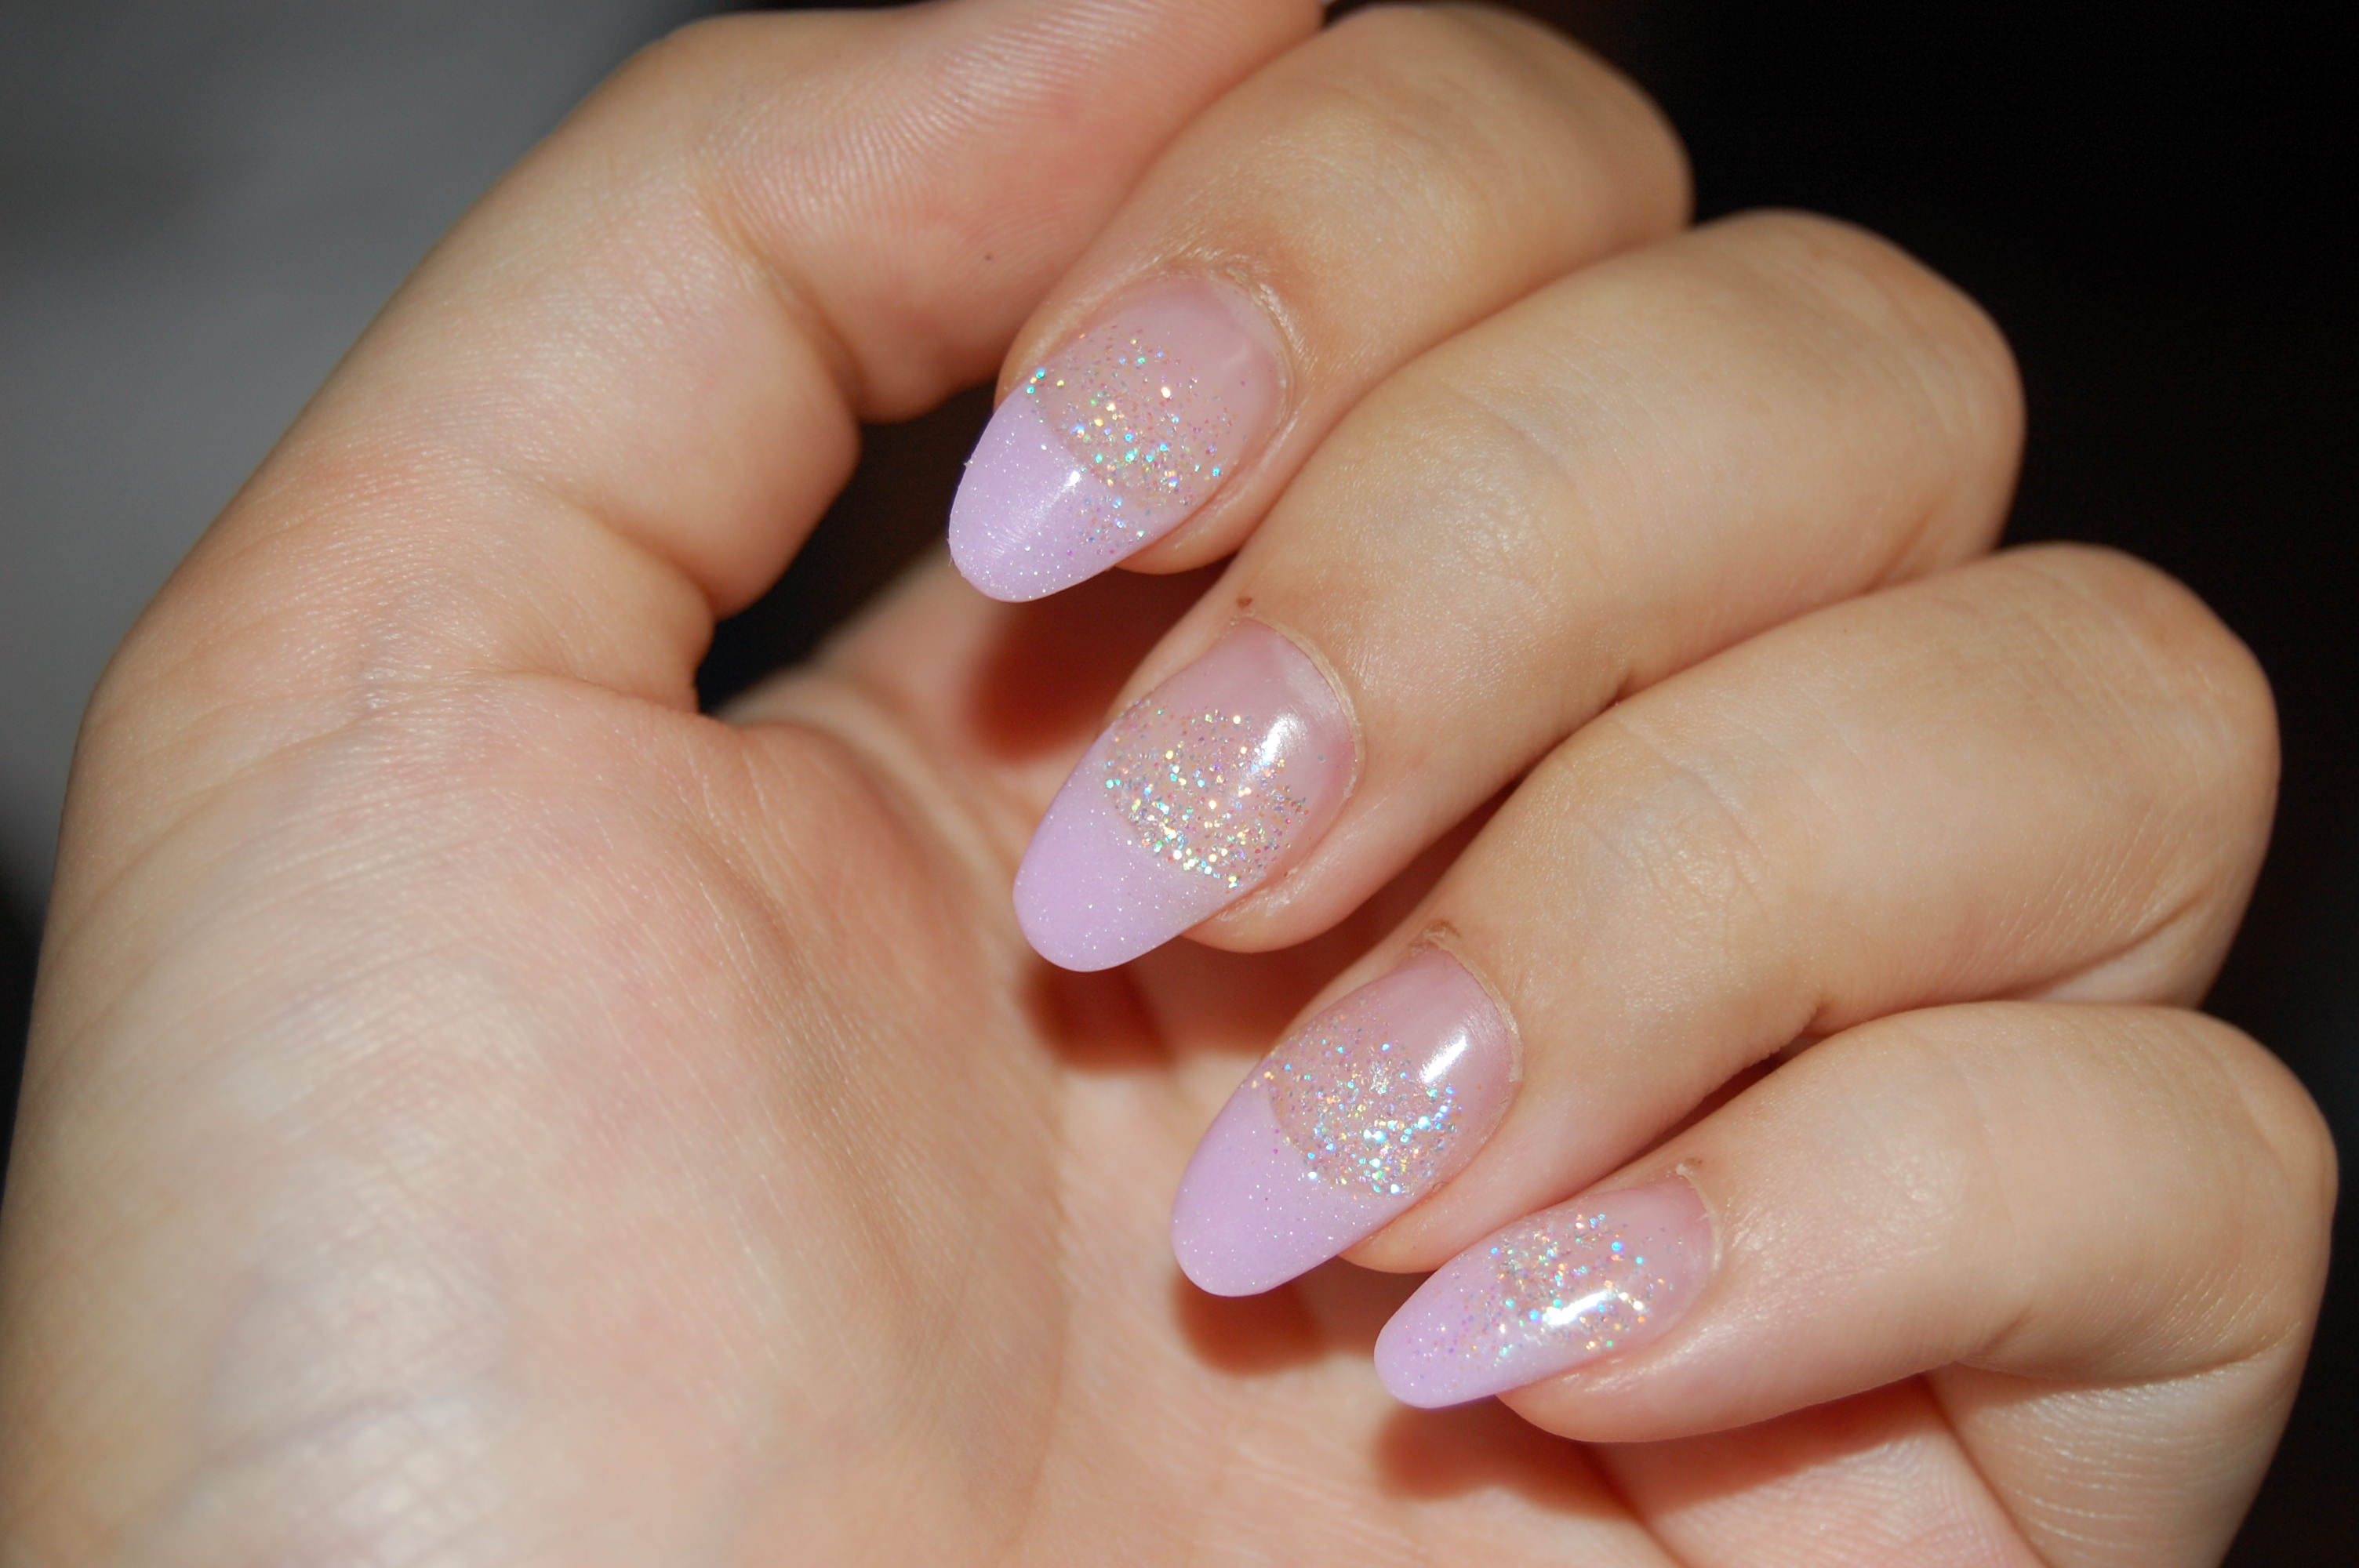 Nail Designs With Glitter Acrylic Ivoiregion